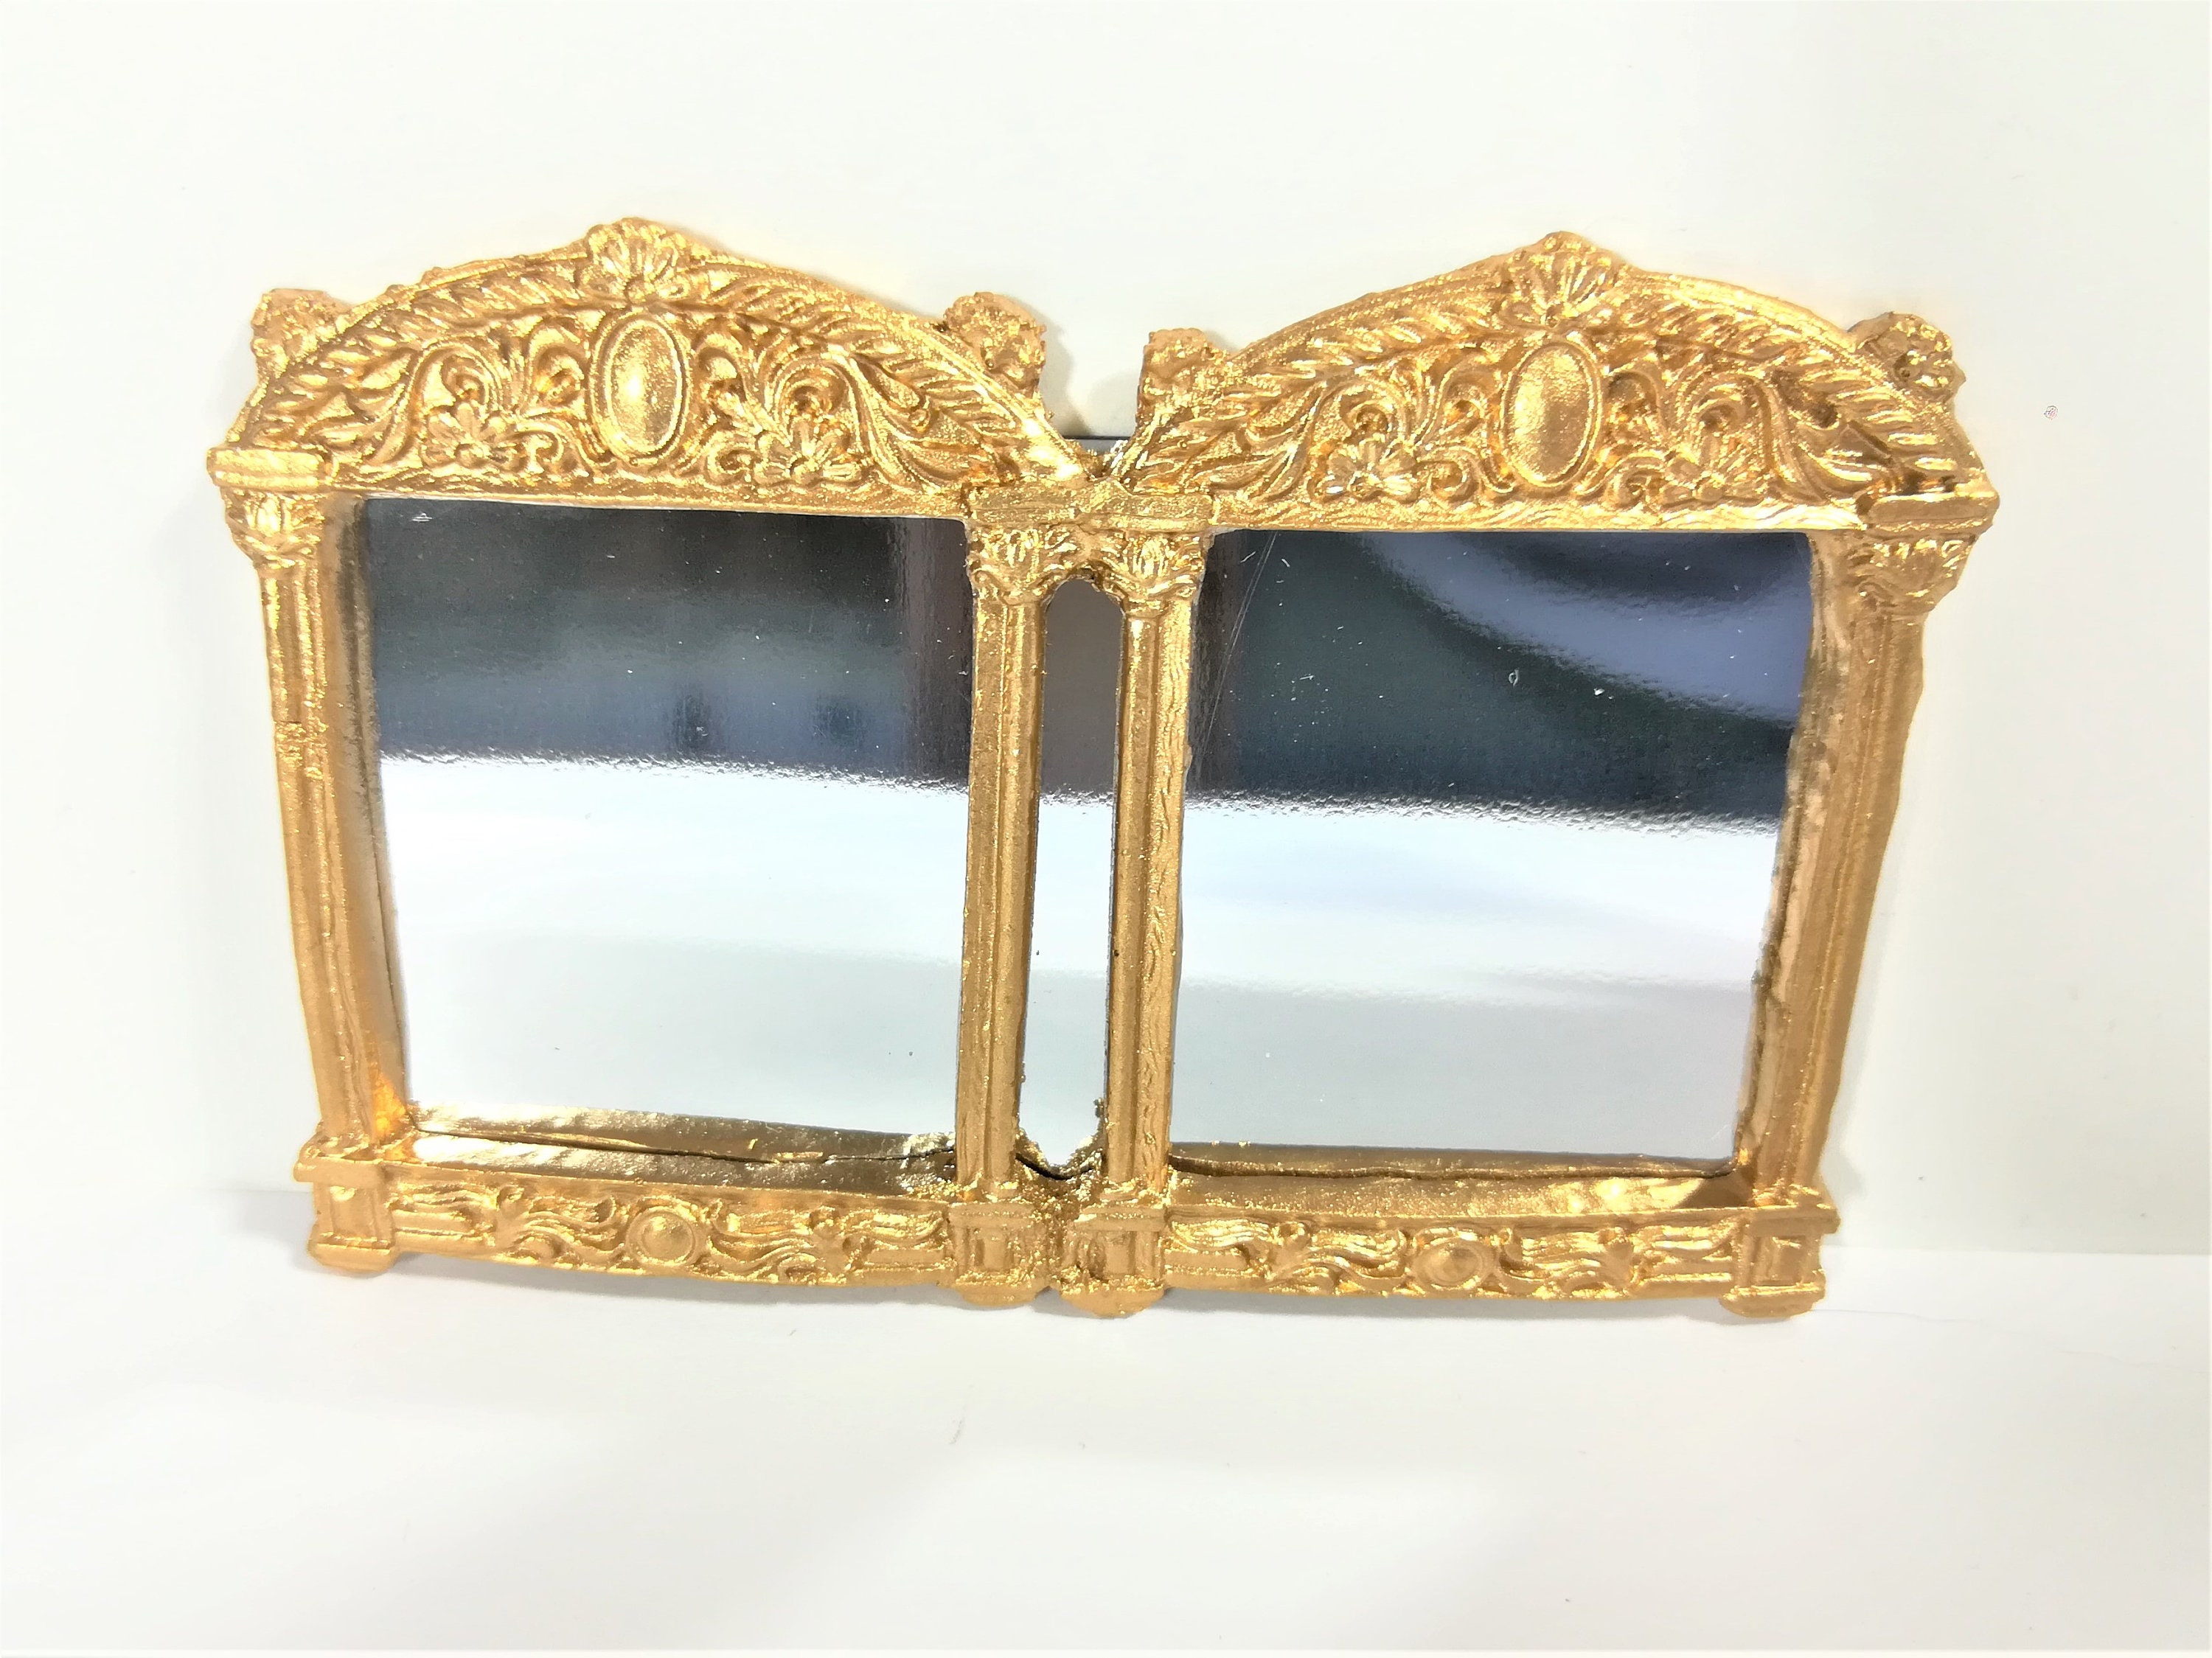 Dollhouse Miniature Fancy Gold Mirror with Shells /& Flowers 1:12 Scale Accessory